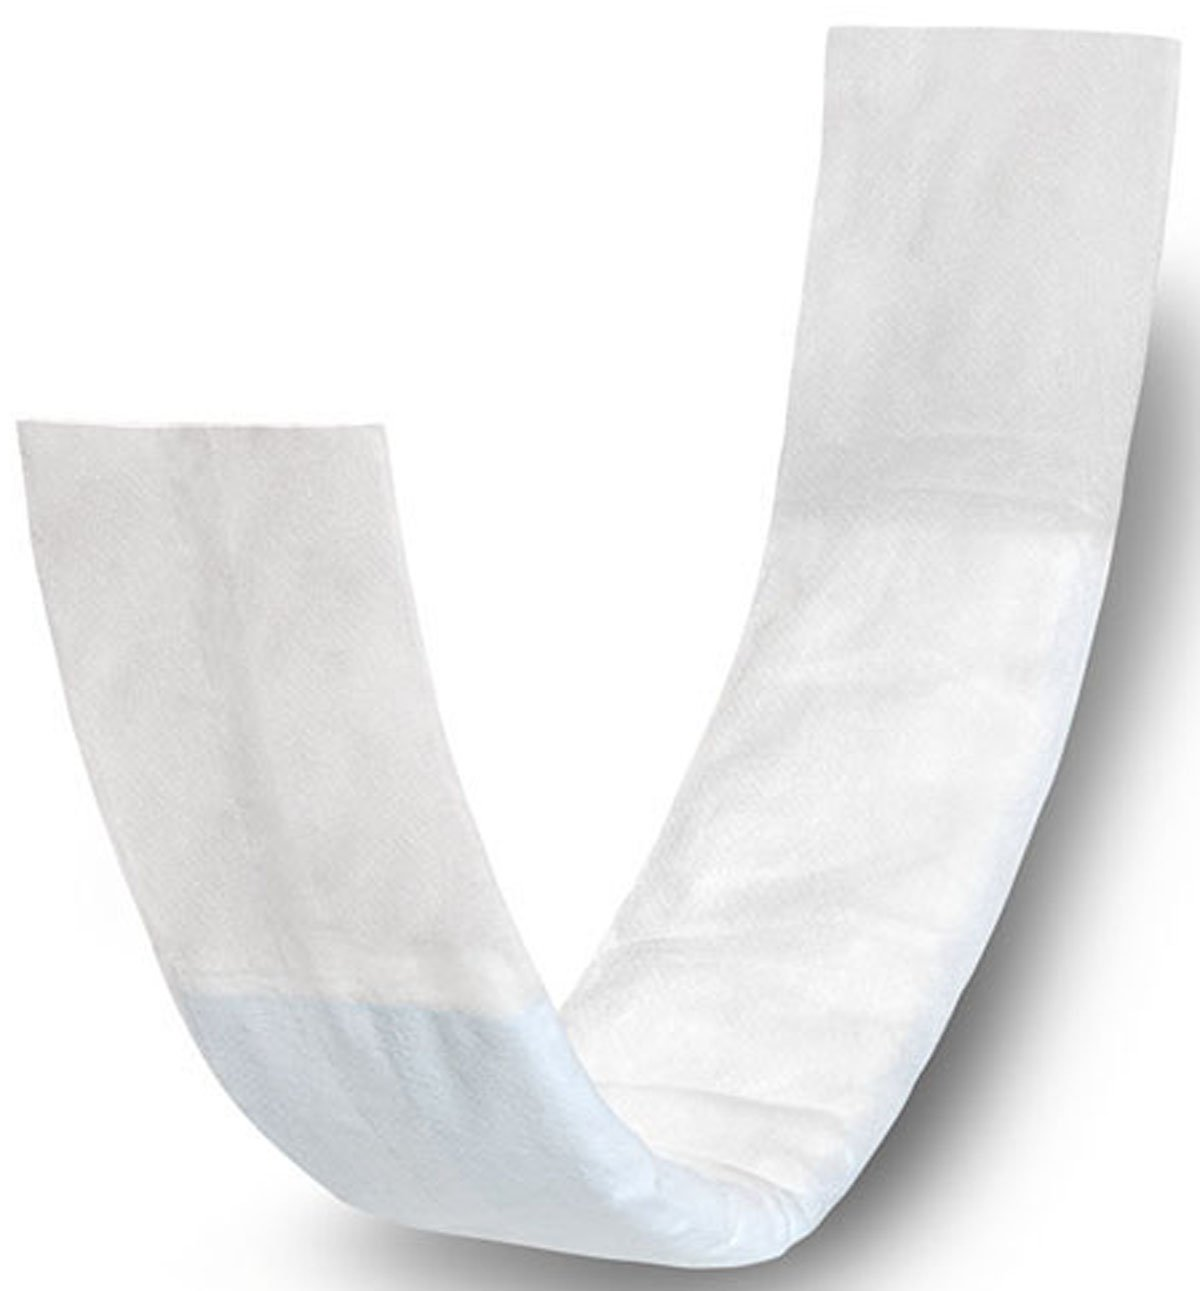 Medline NON241281 Maternity Maxi Pads with Tails, 11'', Individually Wrapped (Pack of 288)